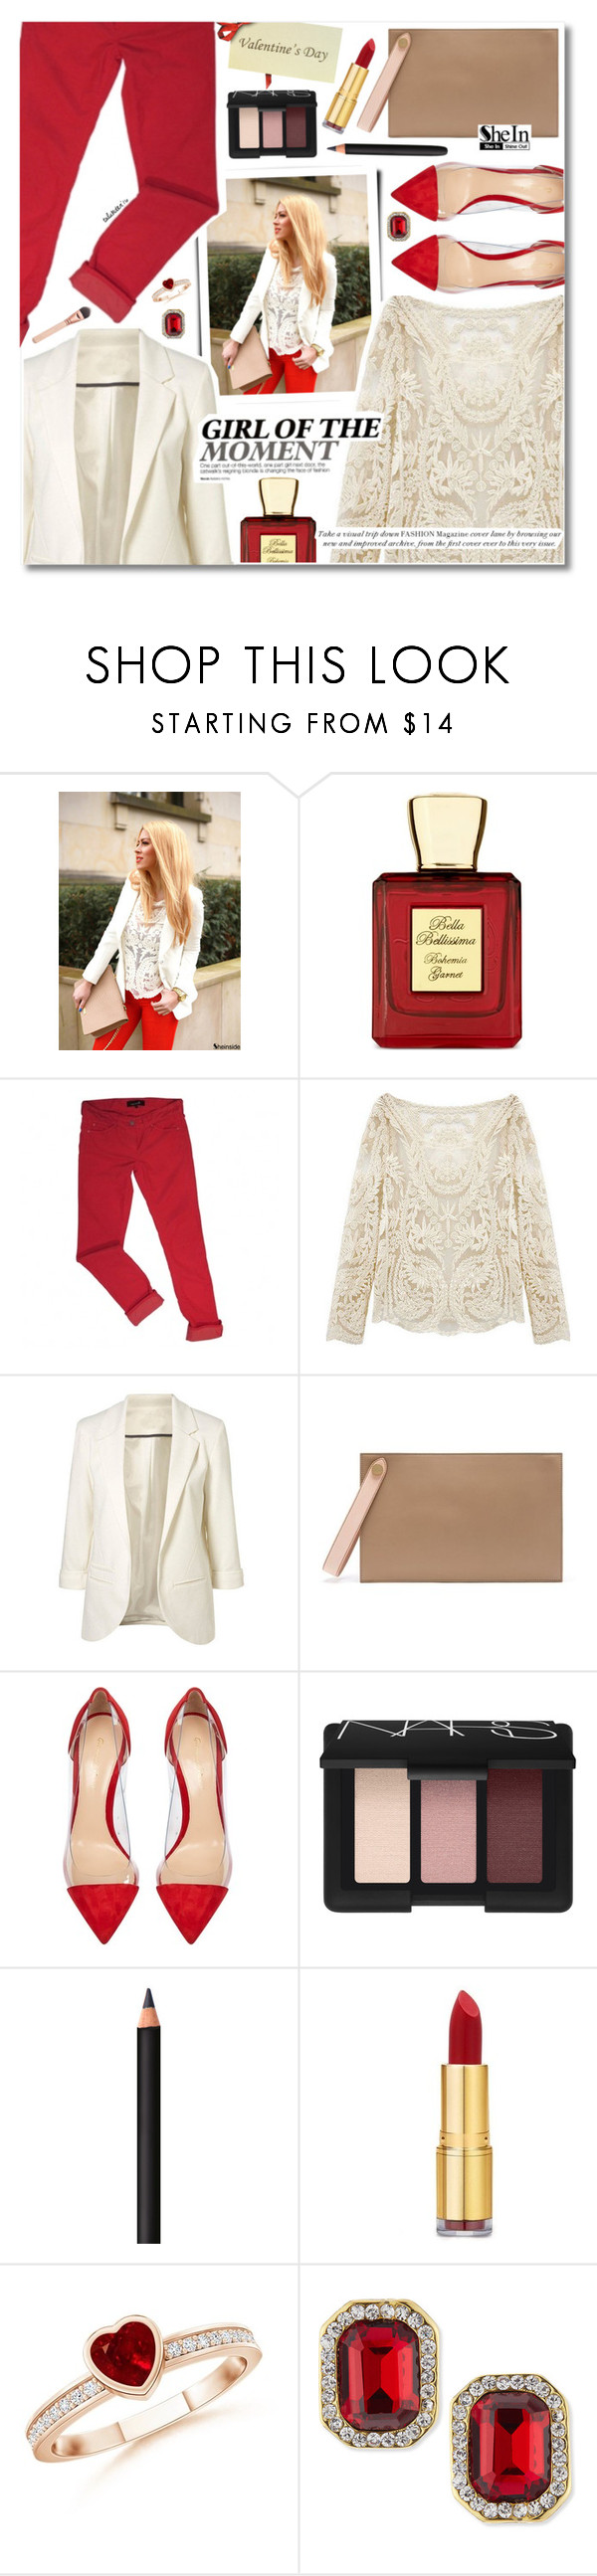 """""""Girl Of The Moment"""" by talukder ❤ liked on Polyvore featuring Bella Bellissima, Isabel Marant, Mulberry, Gianvito Rossi, NARS Cosmetics, INIKA, Isaac Mizrahi, Kenneth Jay Lane, women's clothing and women"""